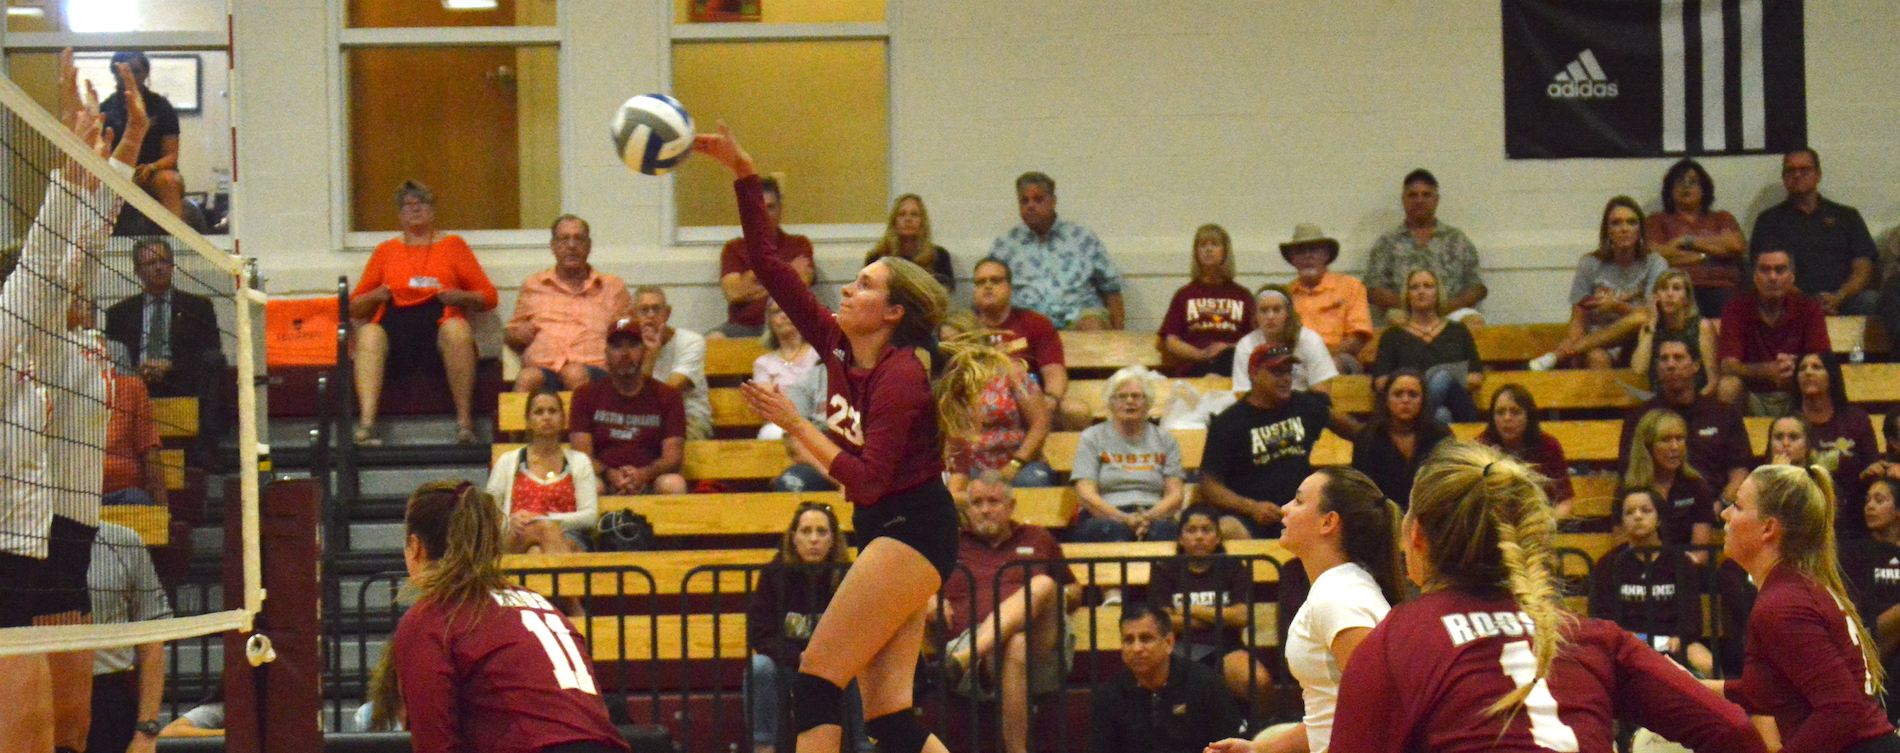 'Roos Fall in Five to No. 24 UMHB